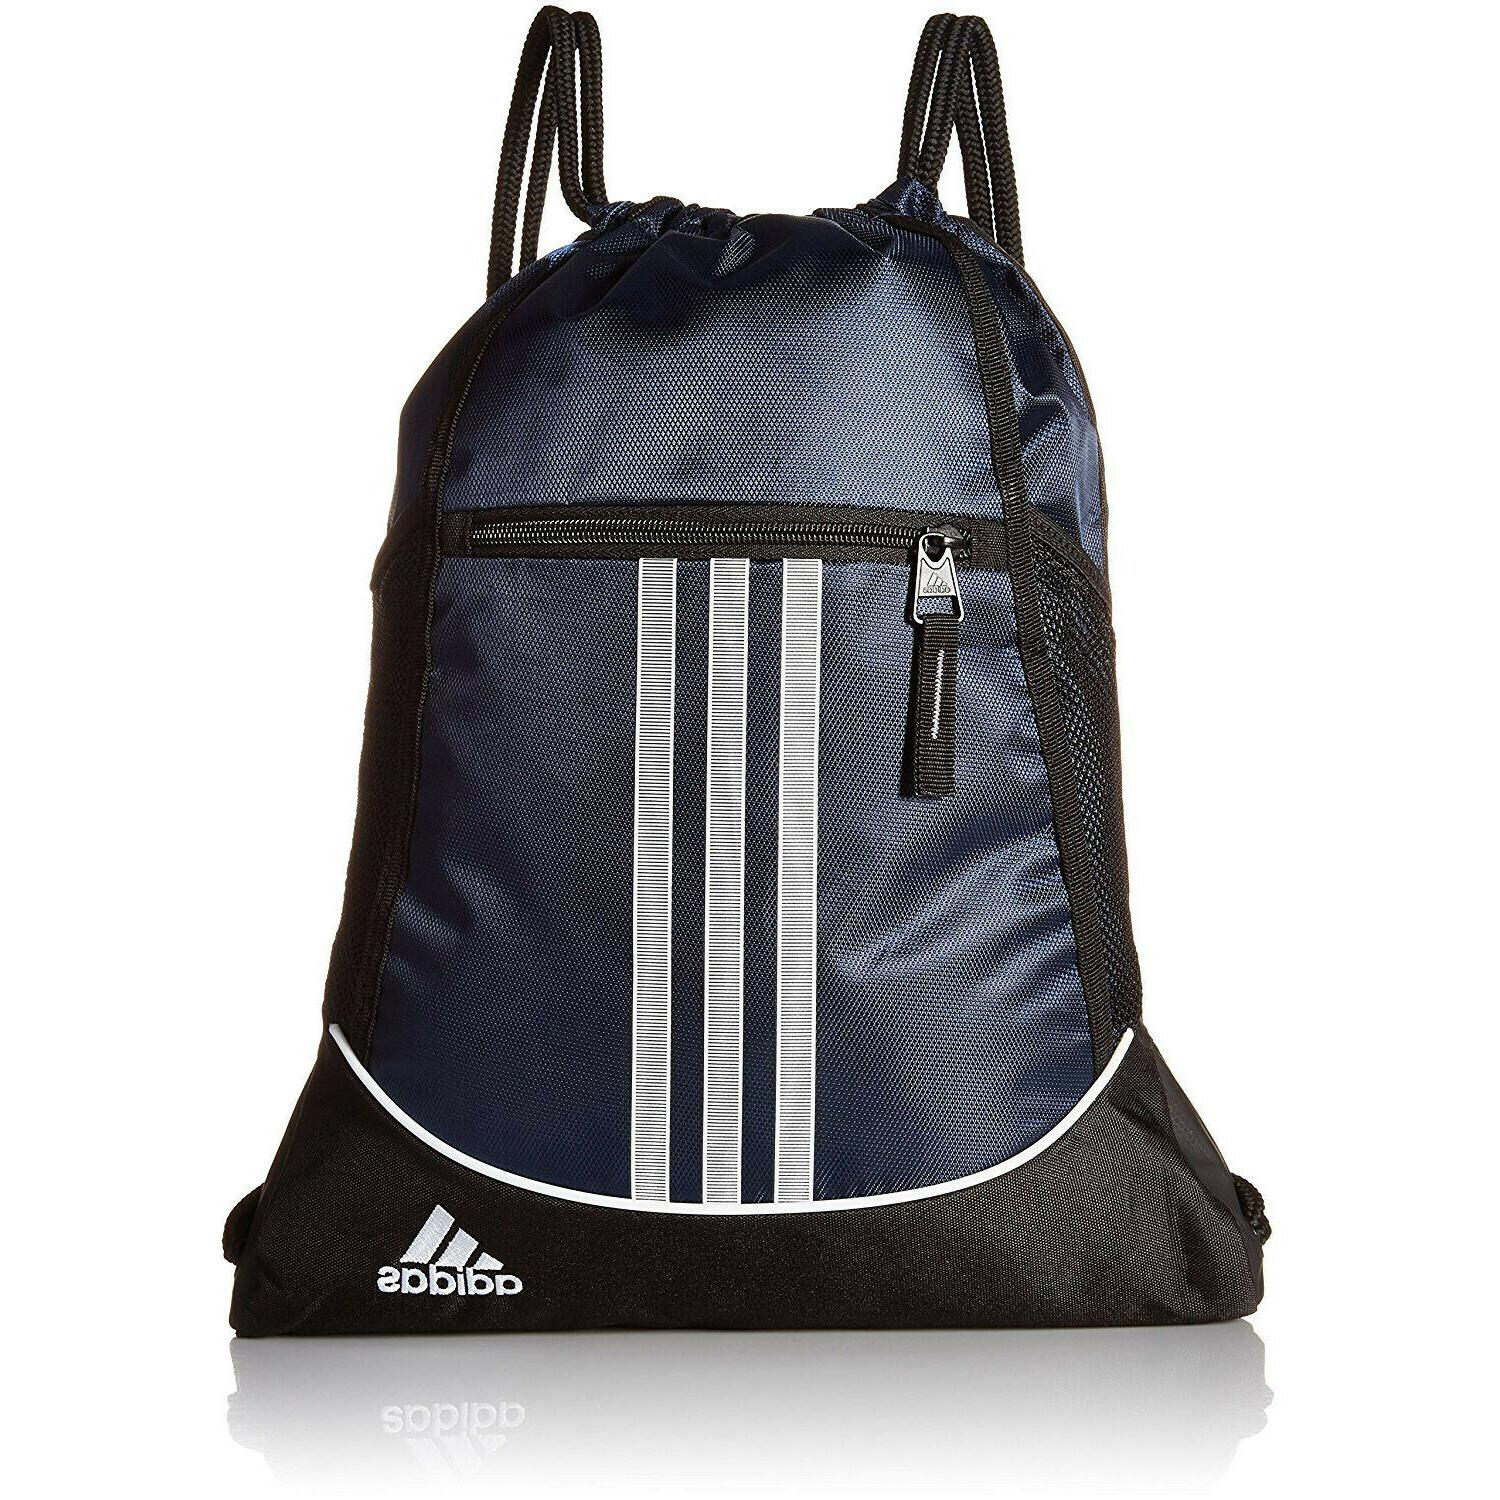 drawstring backpack sackpack gym bag